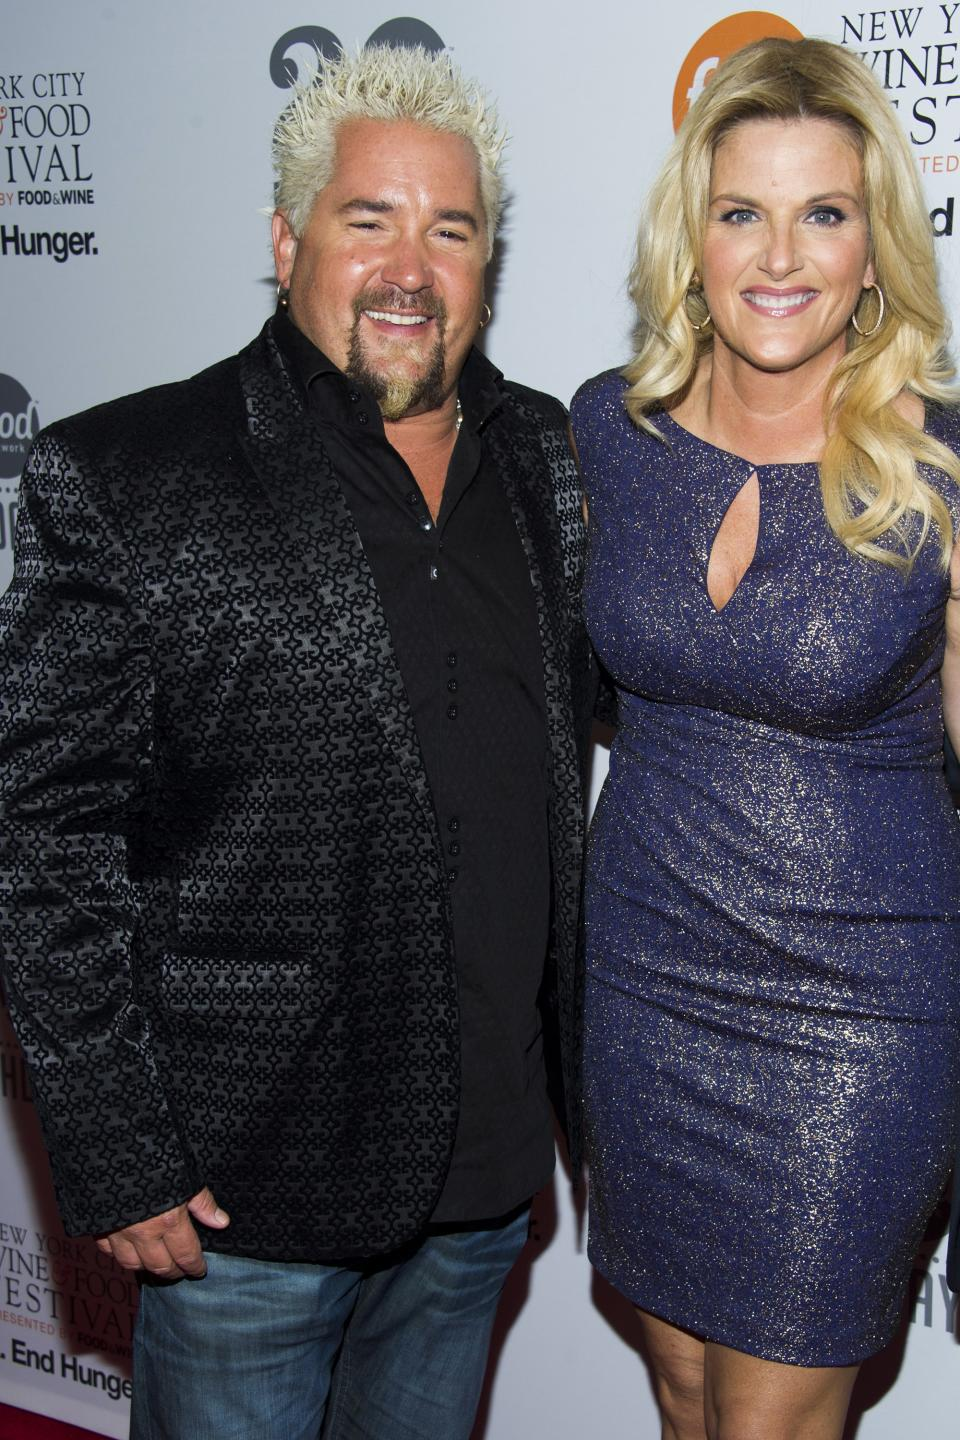 Guy Fieri, right, and Trisha Yearwood attend the Food Network's 20th birthday party on Thursday, Oct. 17, 2013, in New York. (Photo by Charles Sykes/Invision/AP)